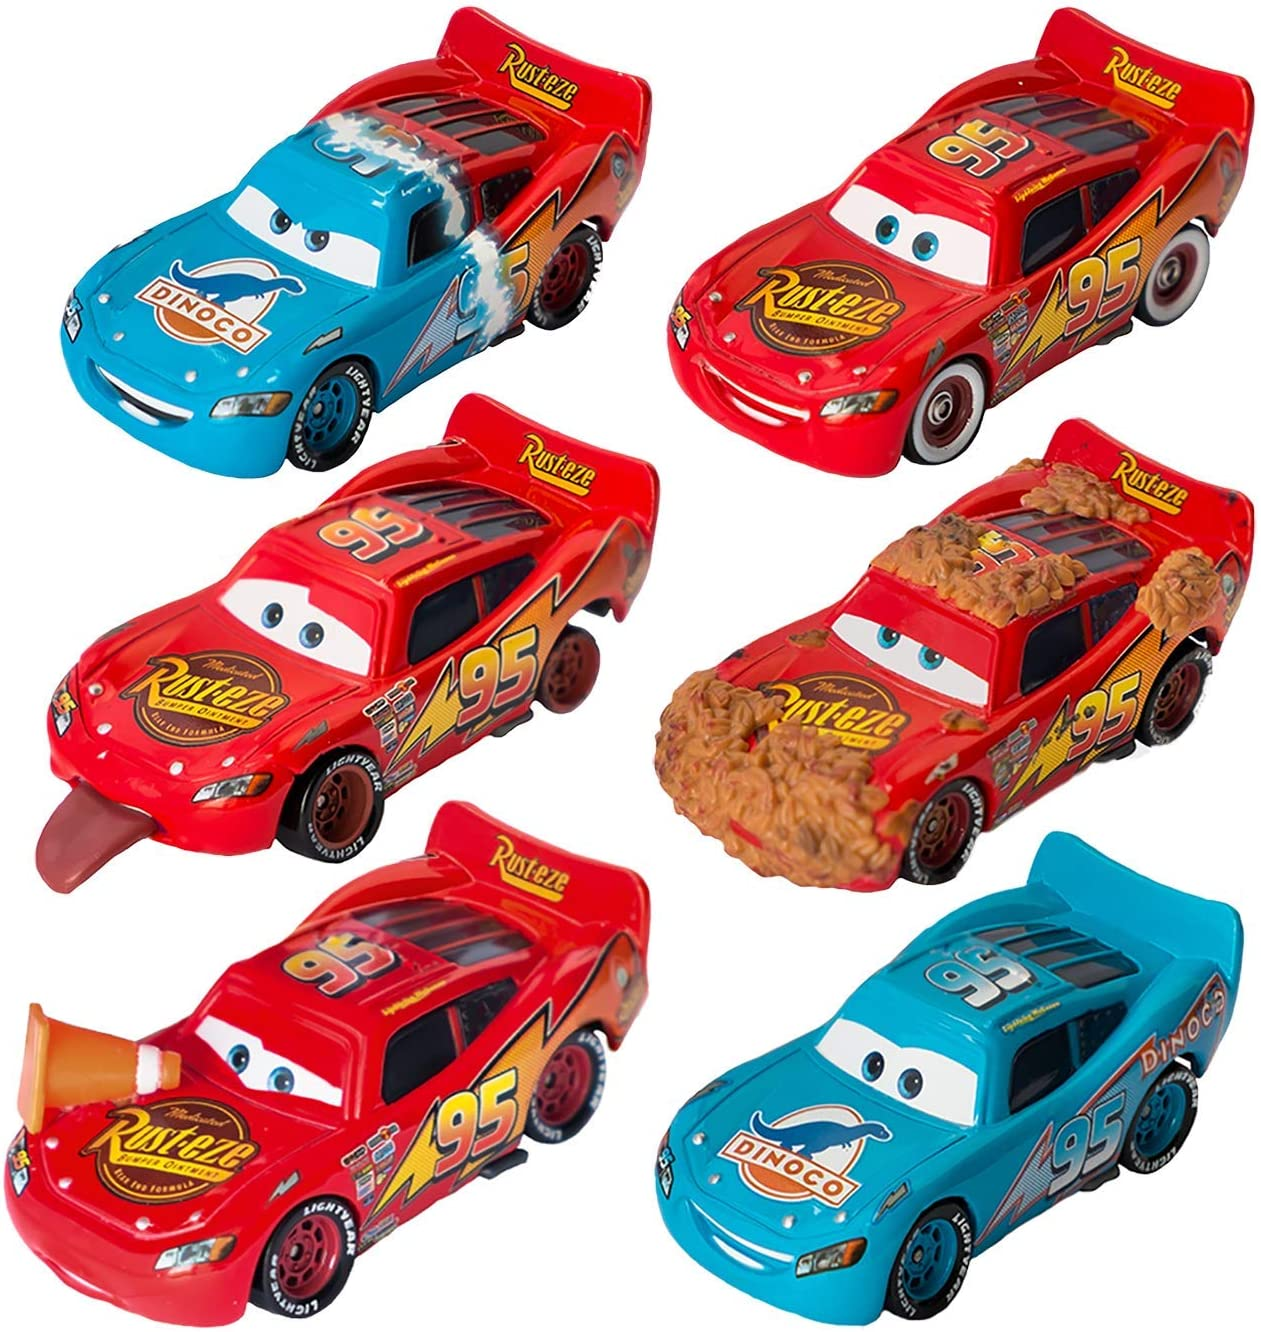 Disney/Pixar Cars Lightning McQueen Diecast Memorable Moments Collection (6 Pack)